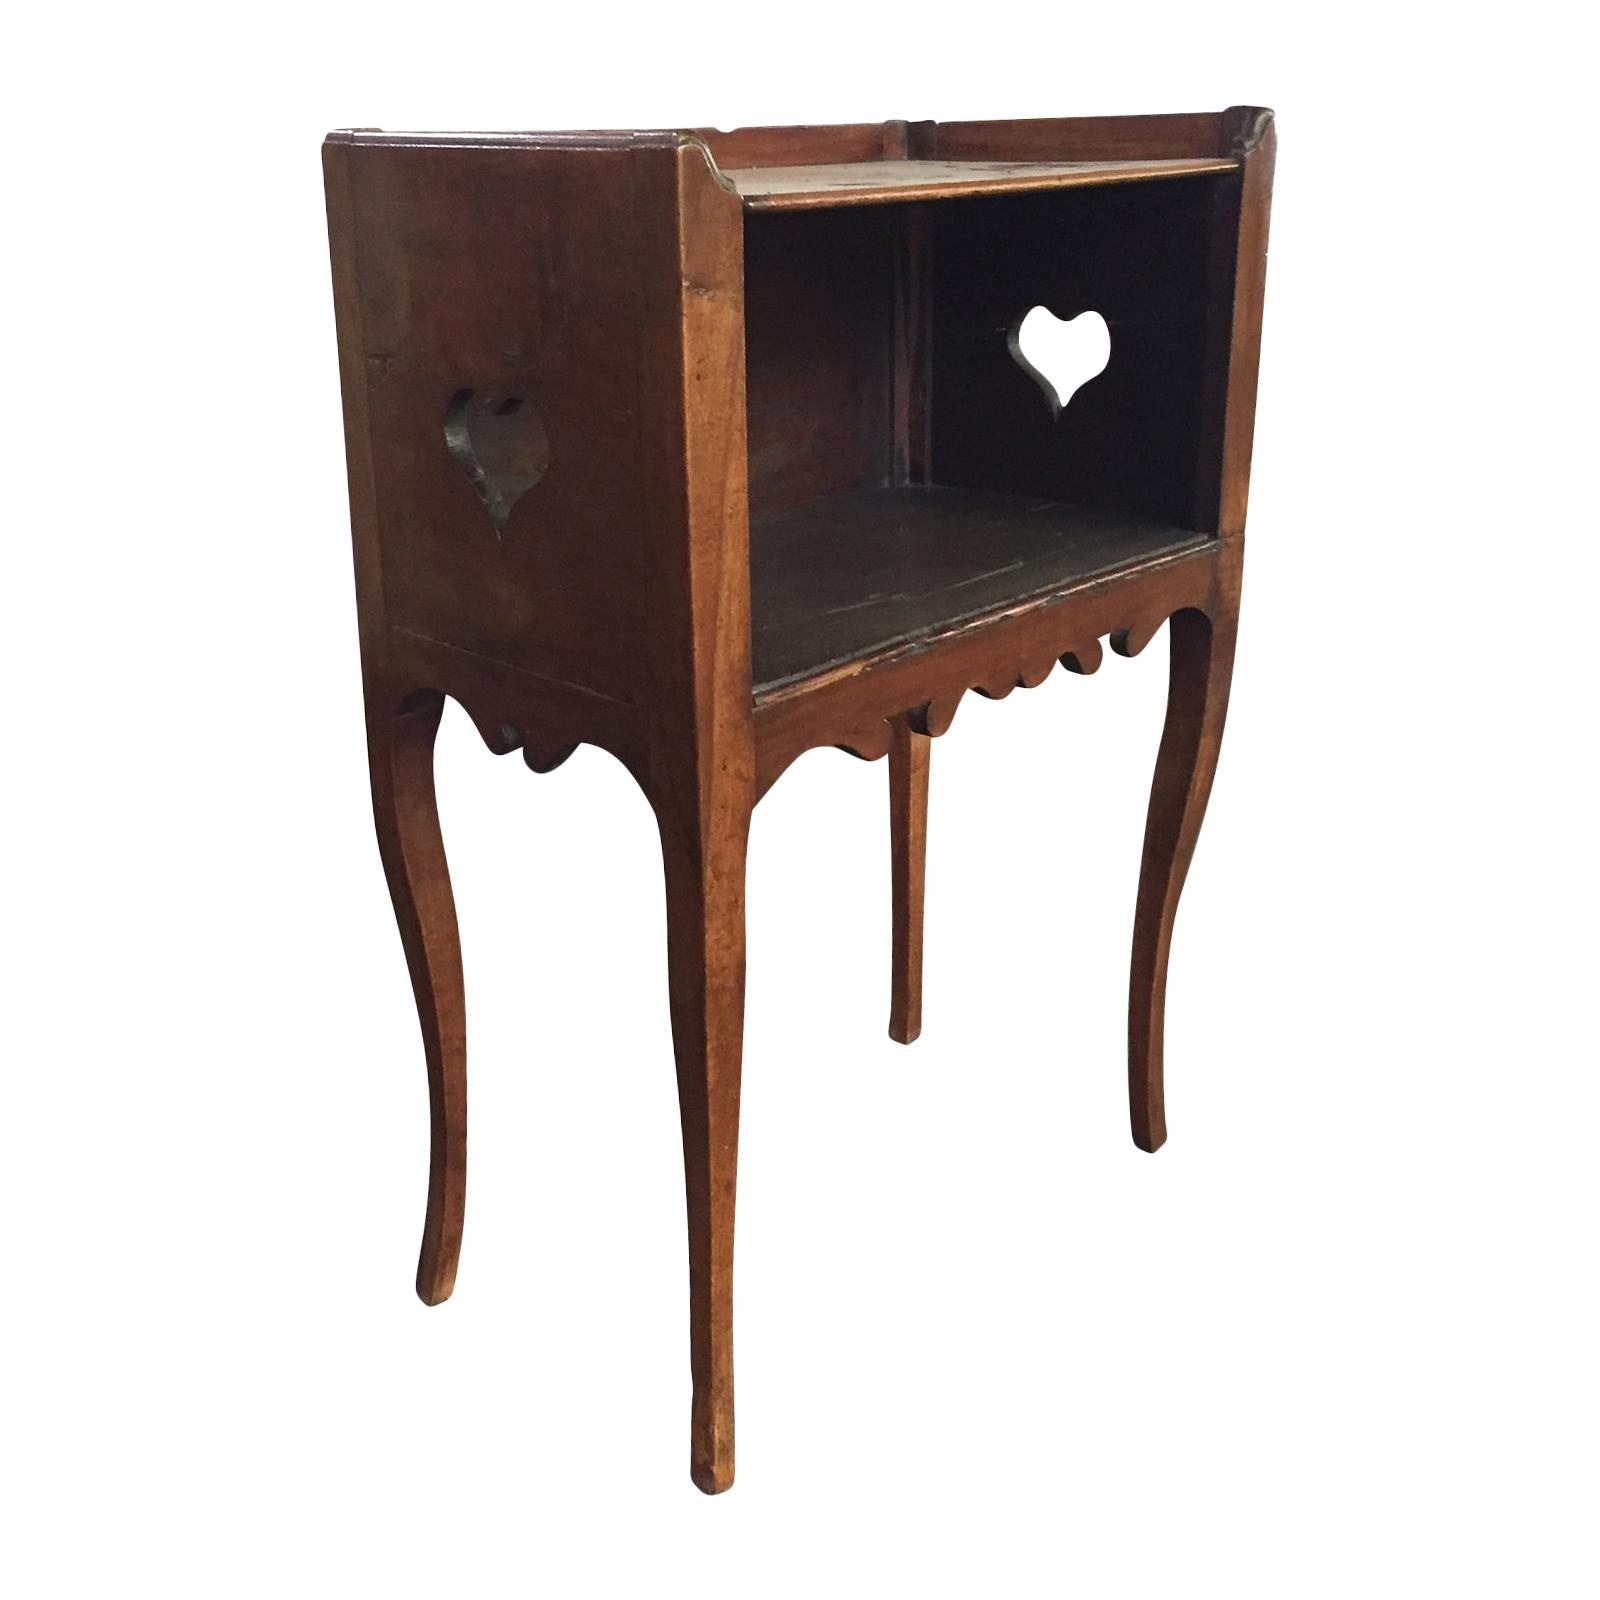 18th-19th Century French Bedside Table